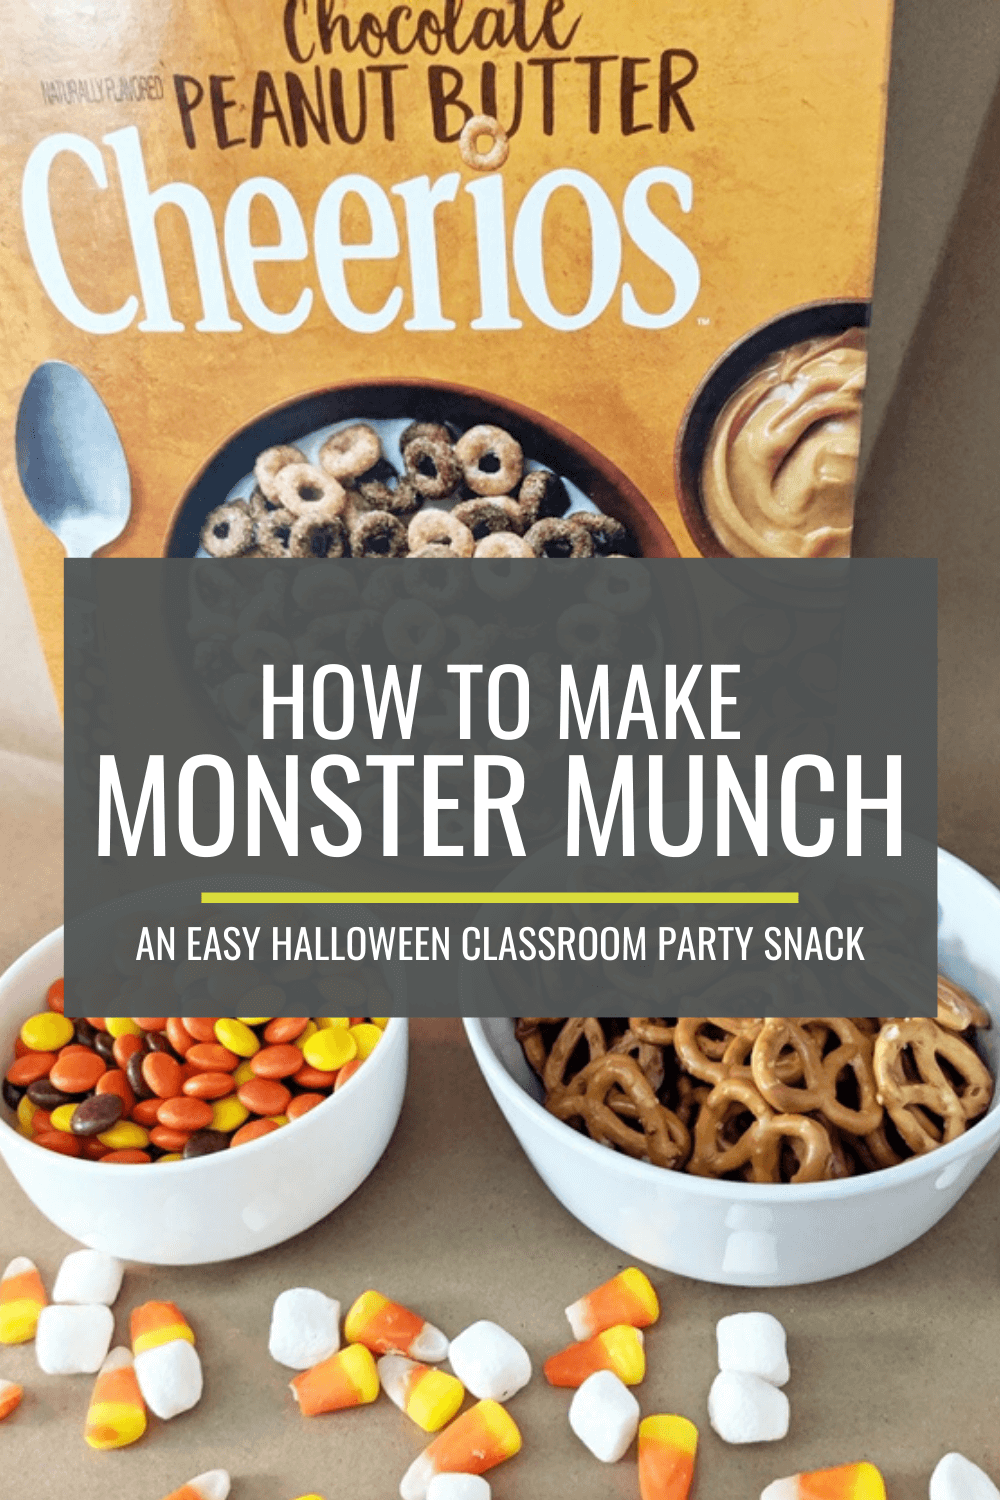 How to Make Monster Munch for a Halloween Classroom Snack